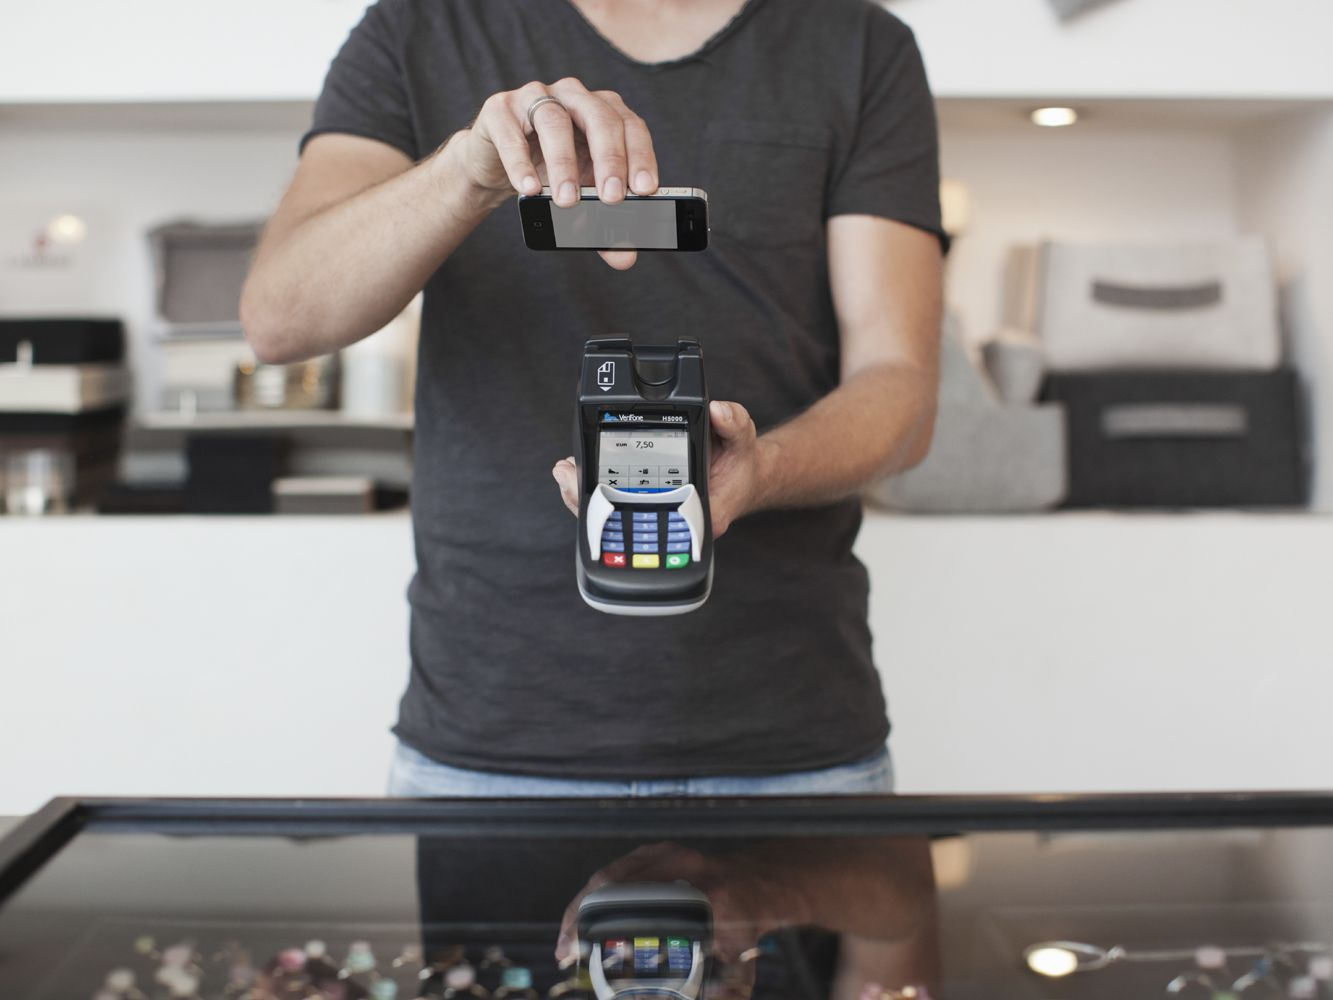 Pay In-Store and Online with the PayPal Mobile App